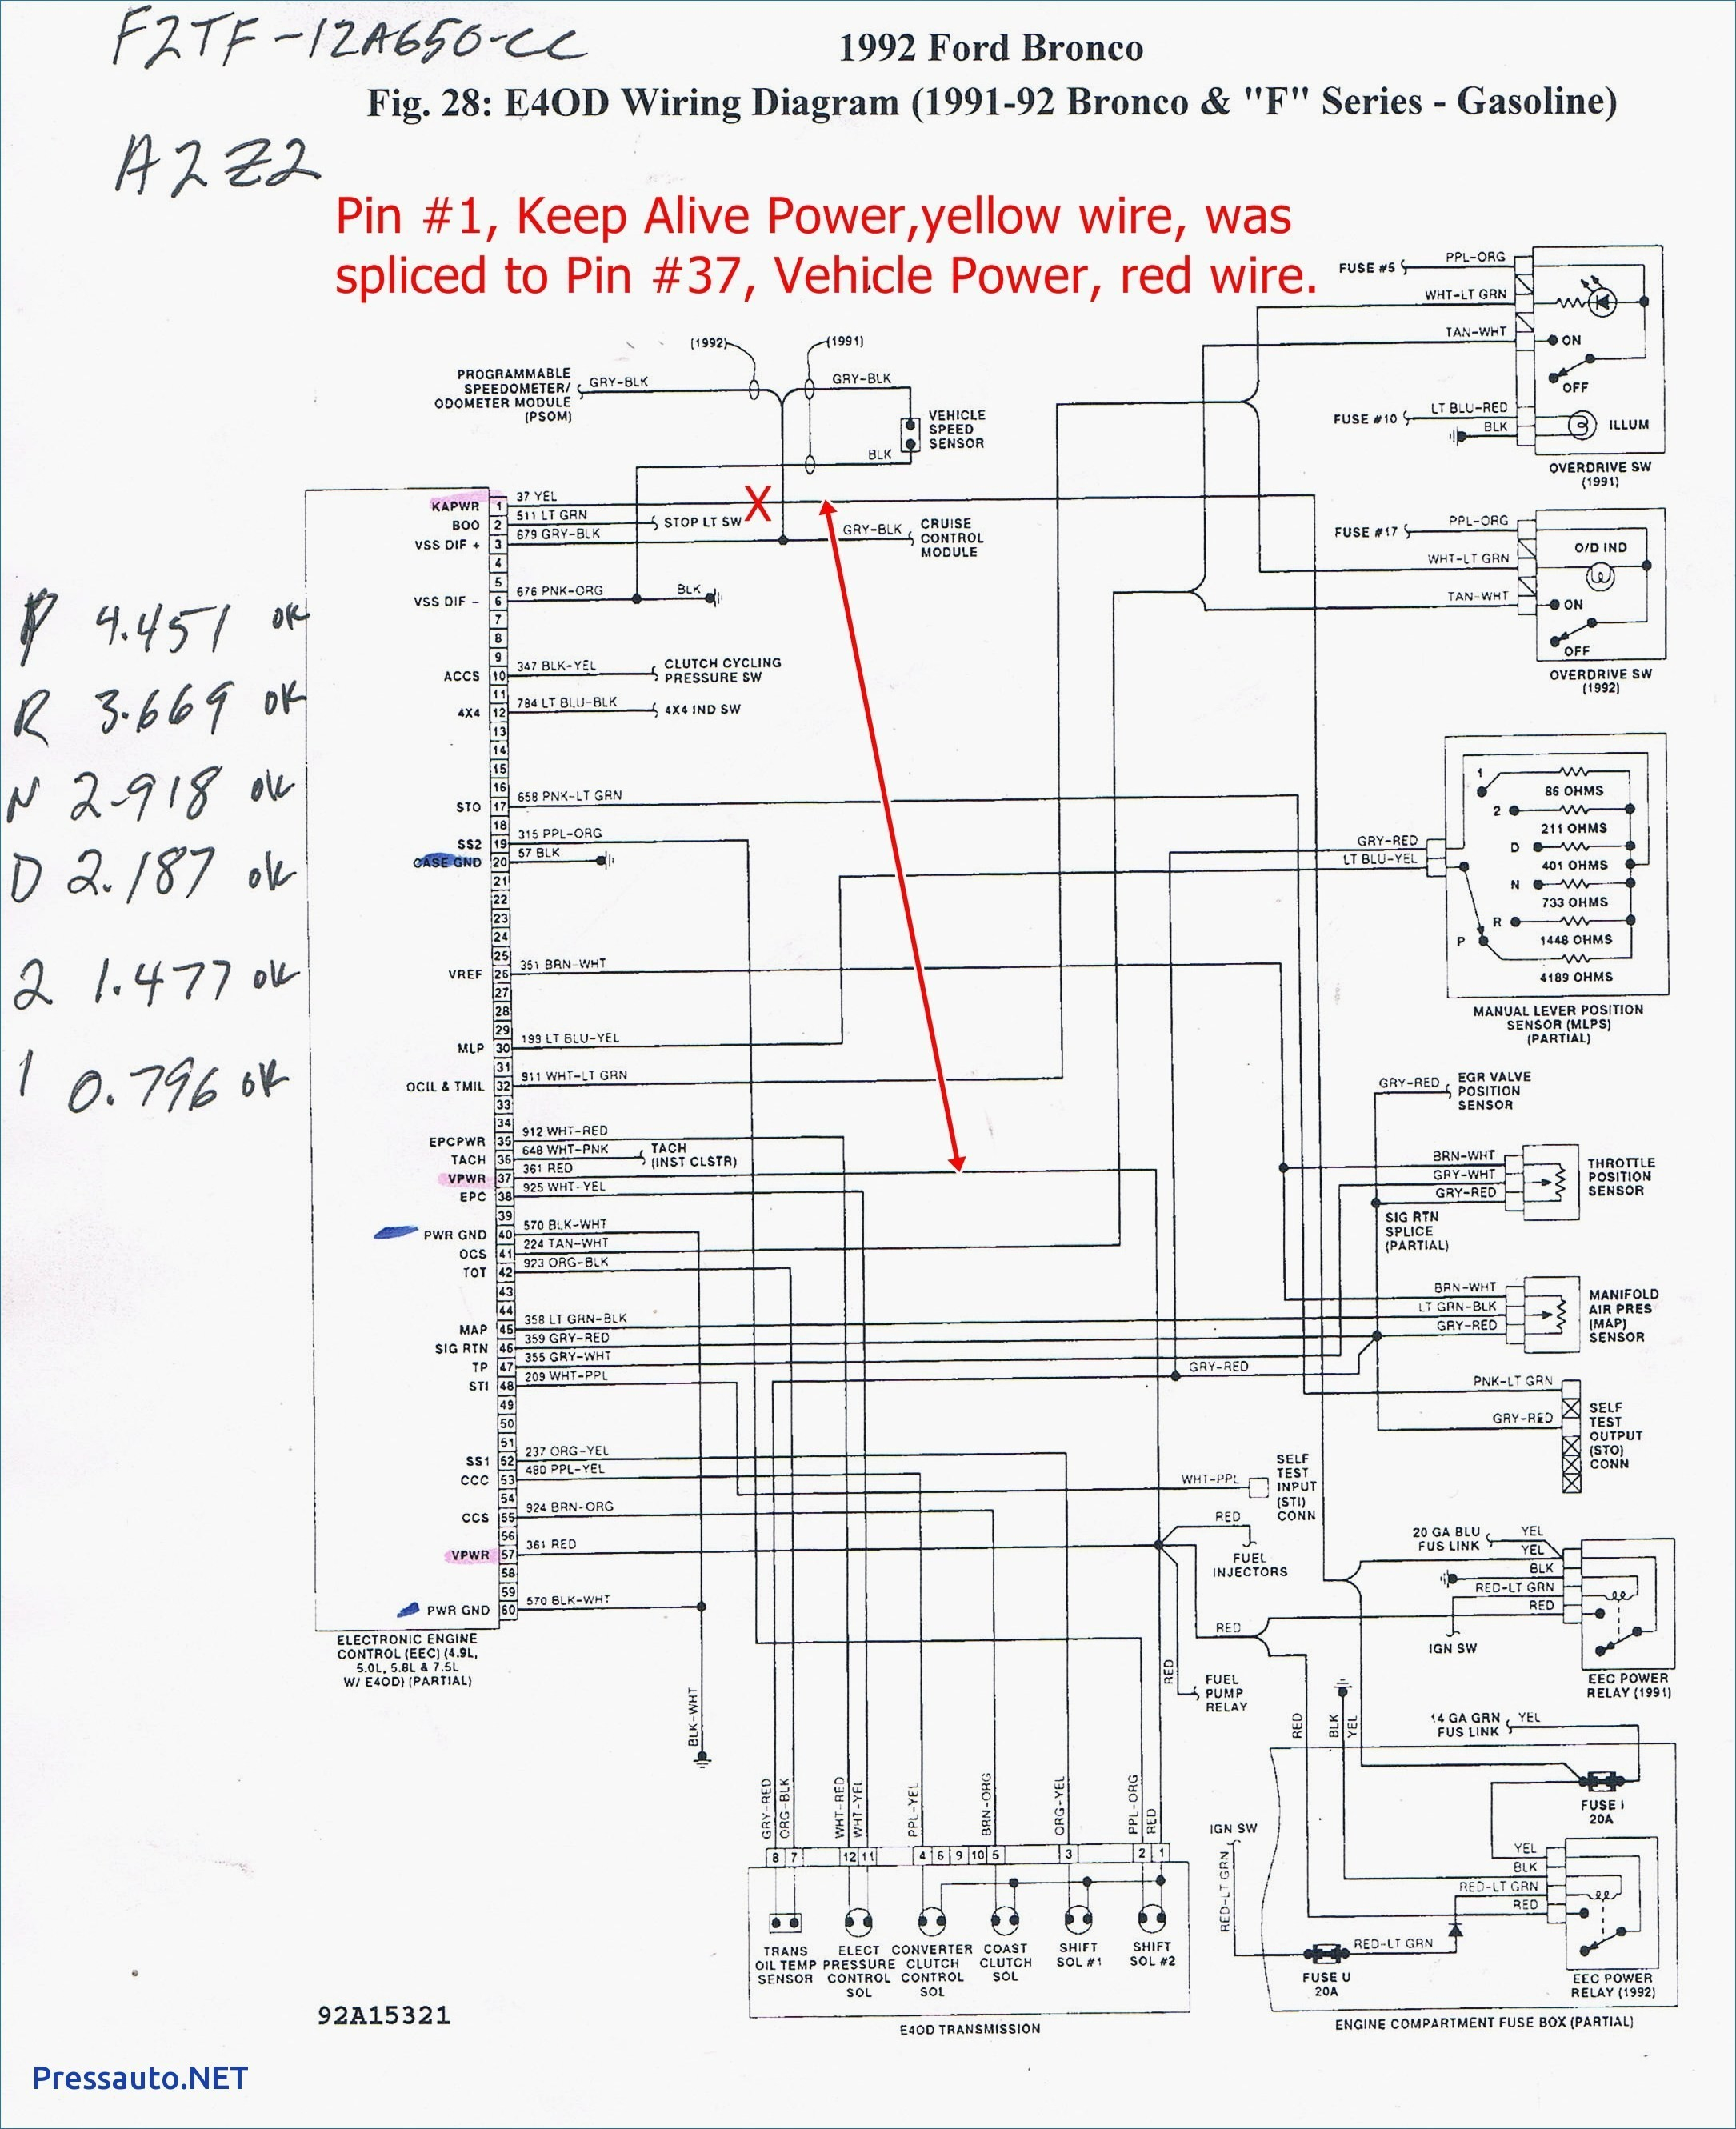 2002 dodge ram 1500 radio wiring diagram Collection-1995 Dodge Ram 1500  Transmission Wiring Diagram